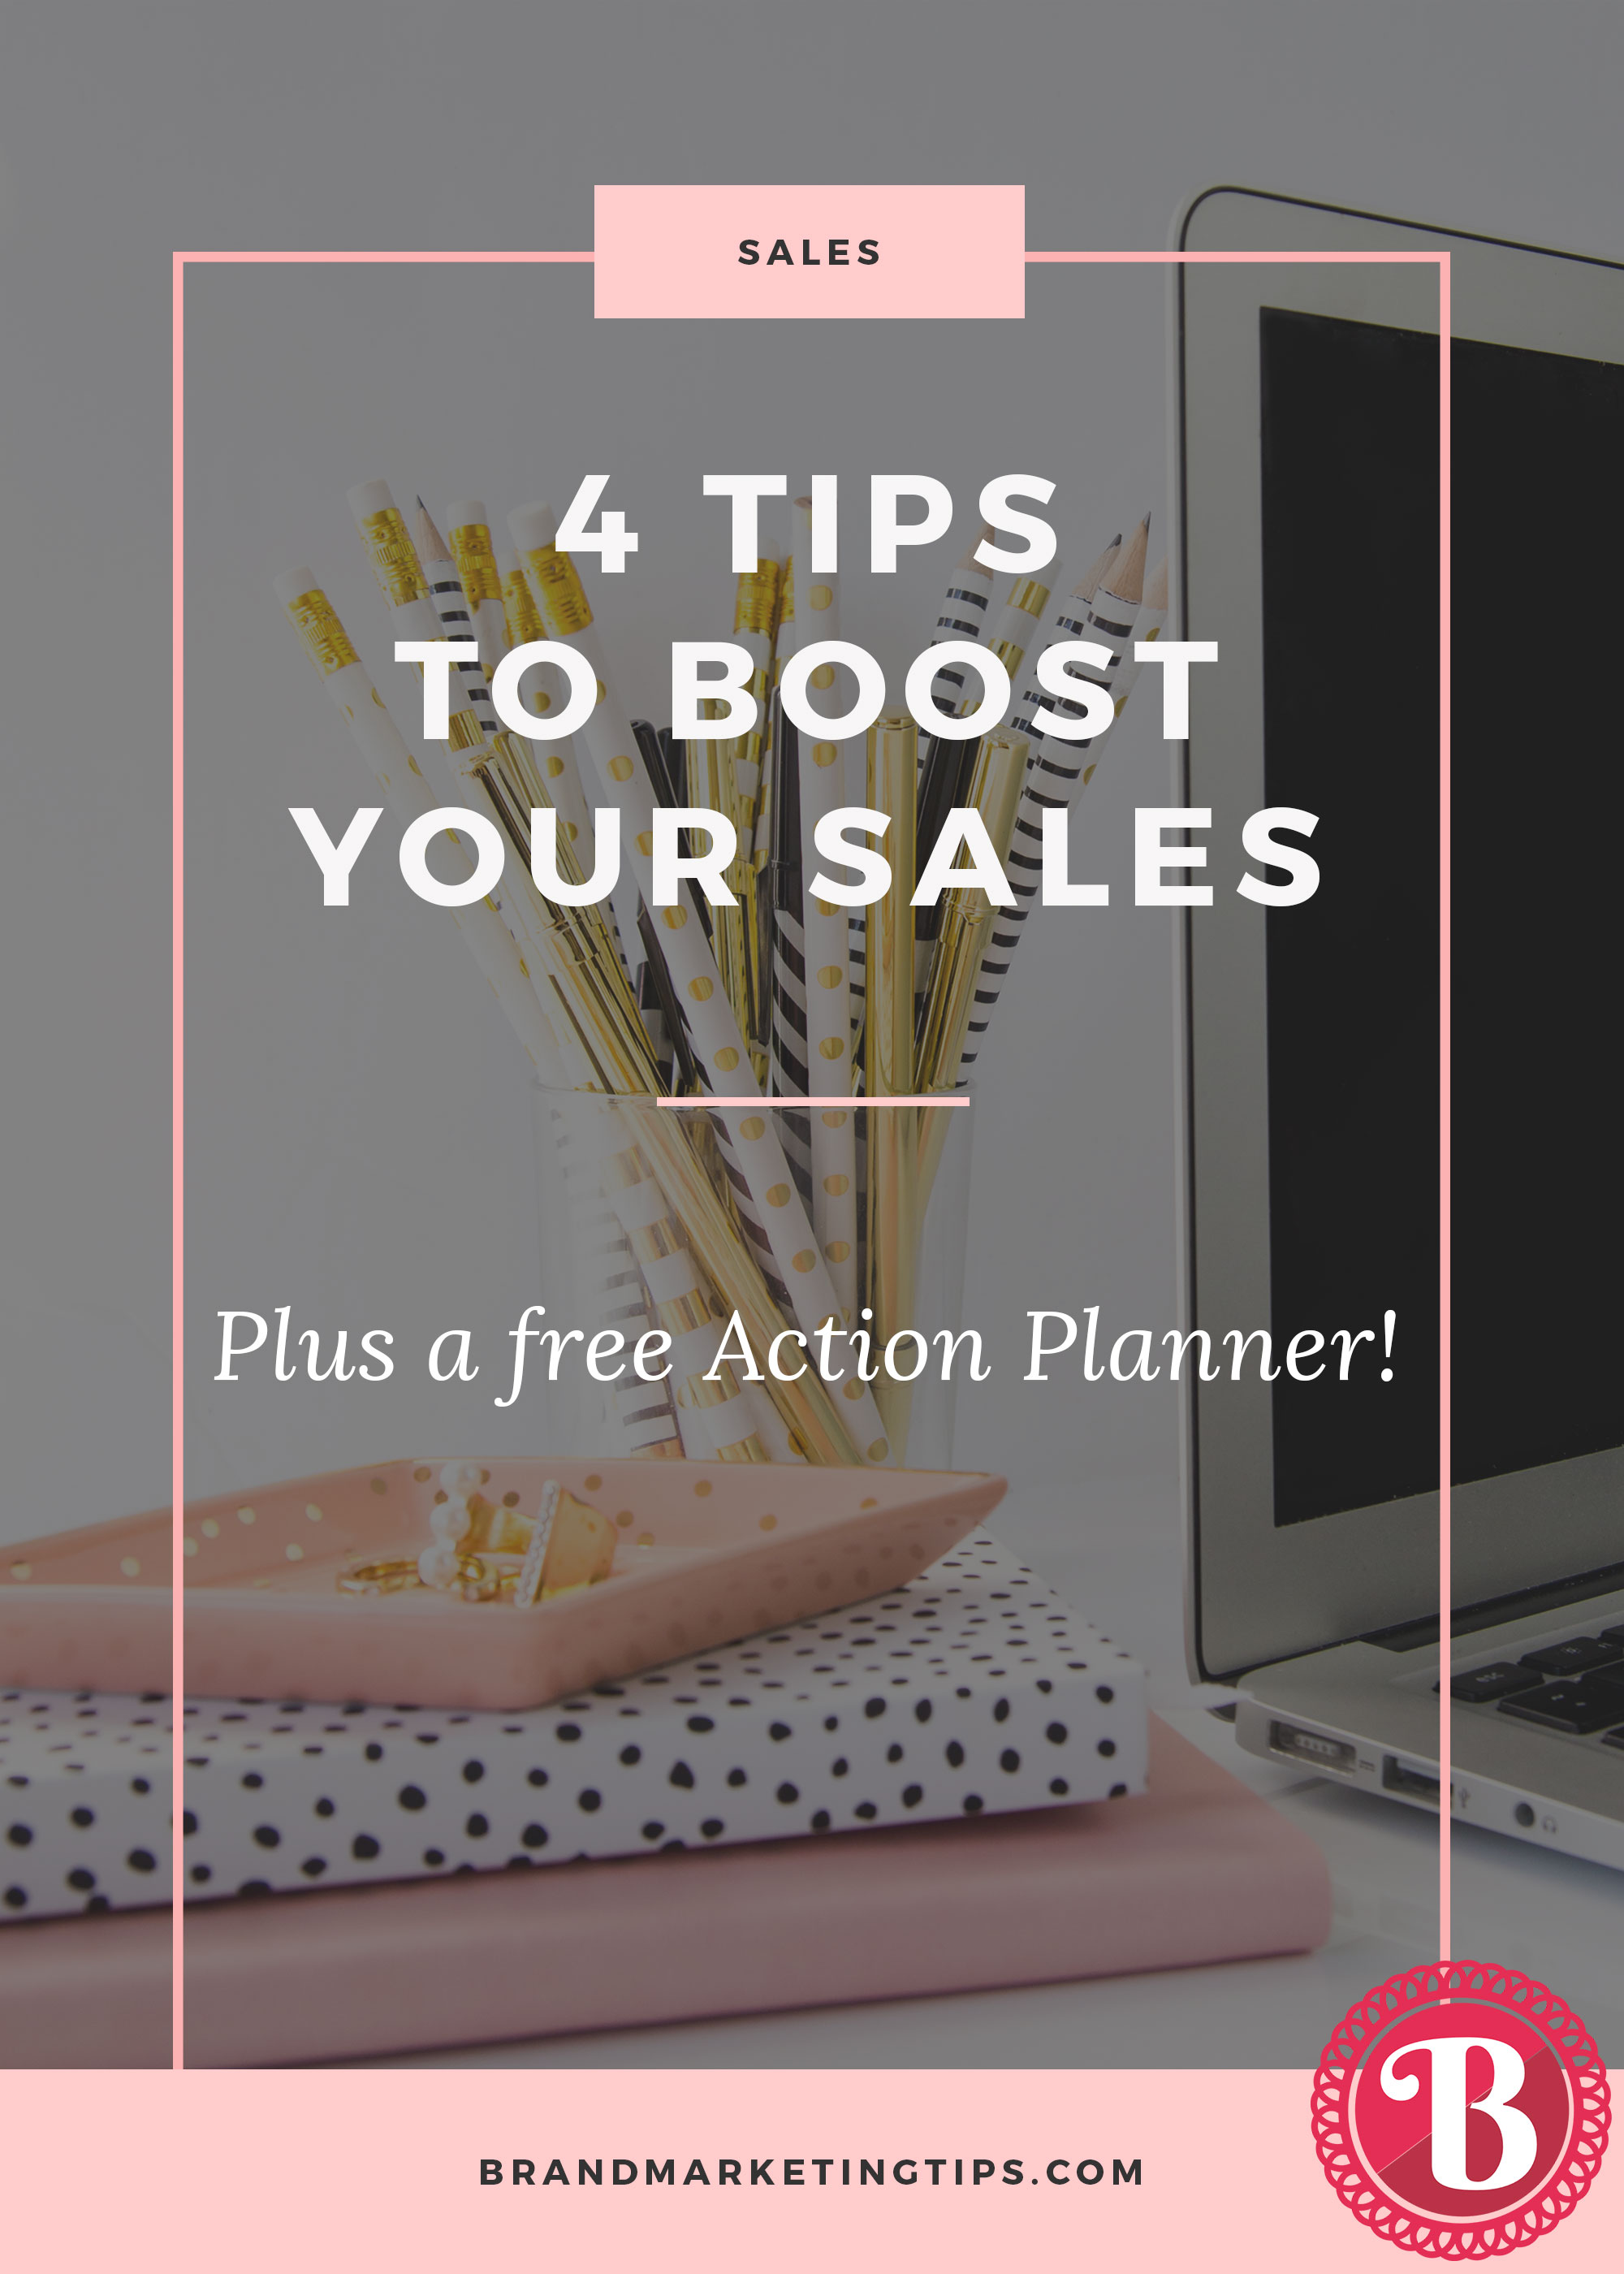 Channel sales strategies: 4 Tips to Boost Your Sales